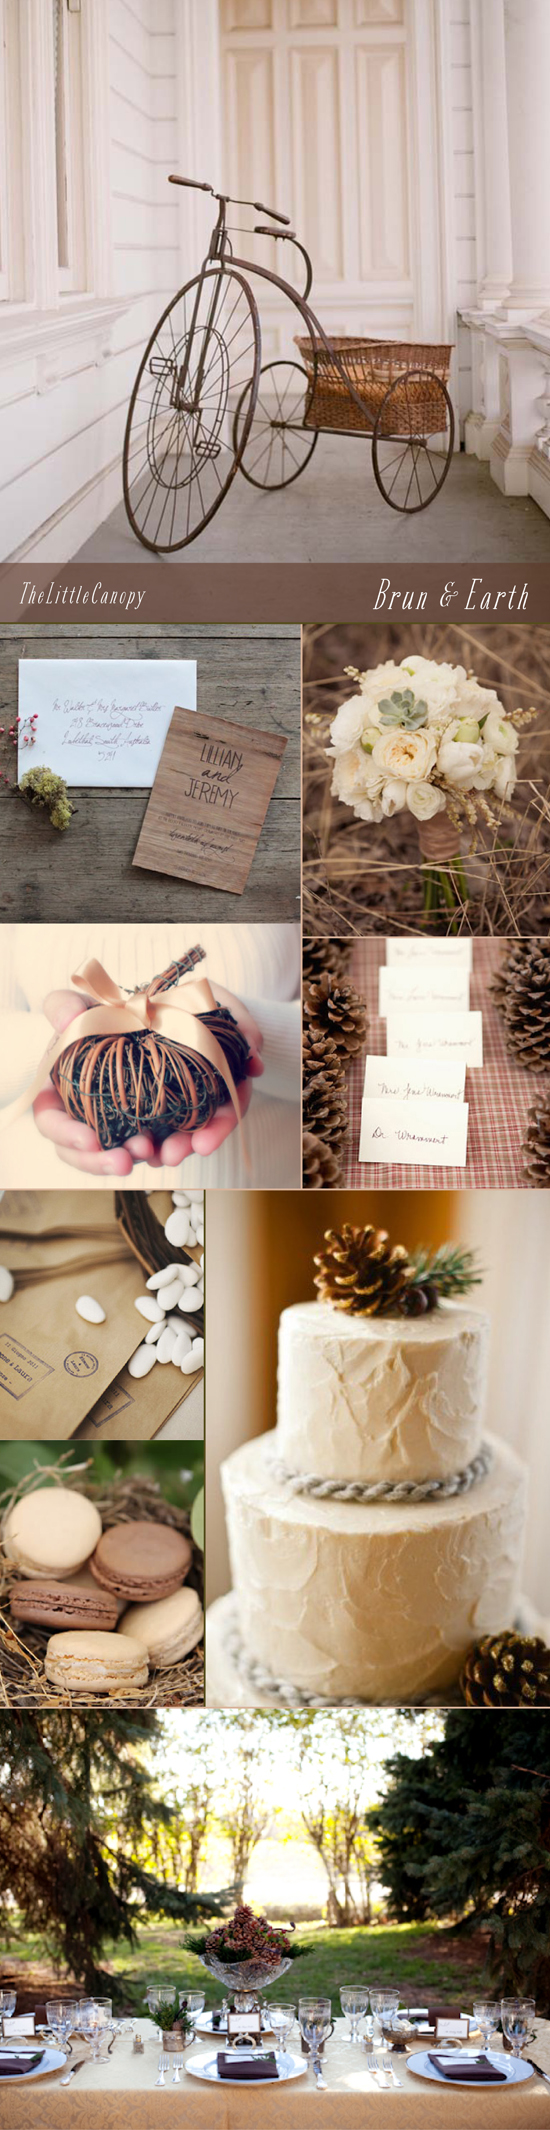 A wedding inspiration board for a quiet brown and earthy color theme mixed with some rustic nature